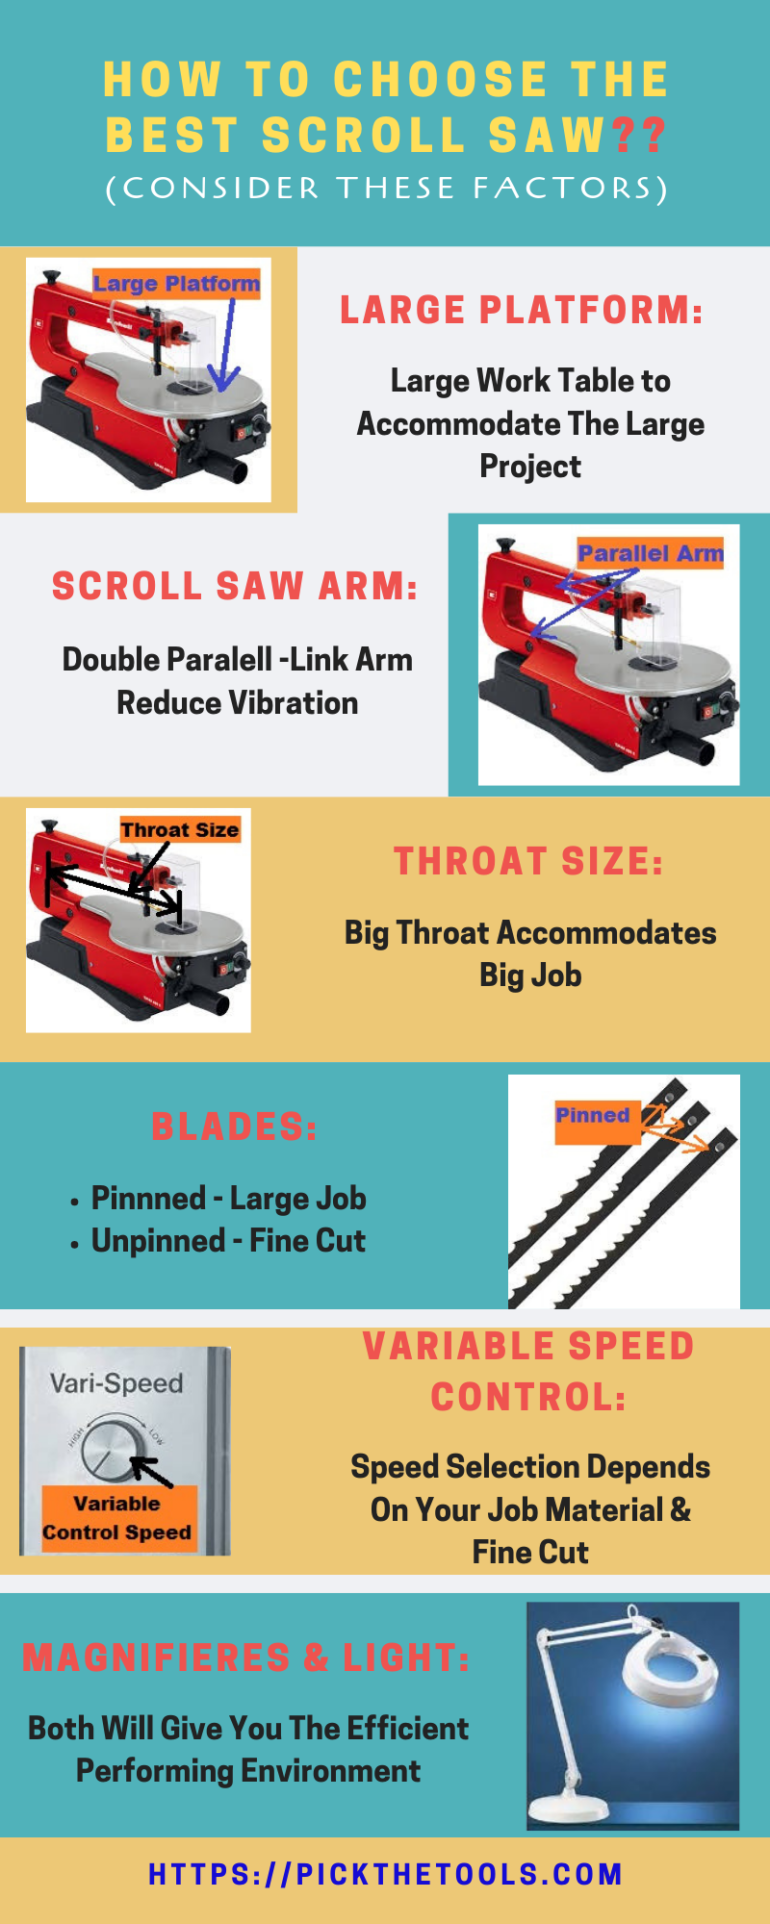 How to choose the best Scroll Saw?